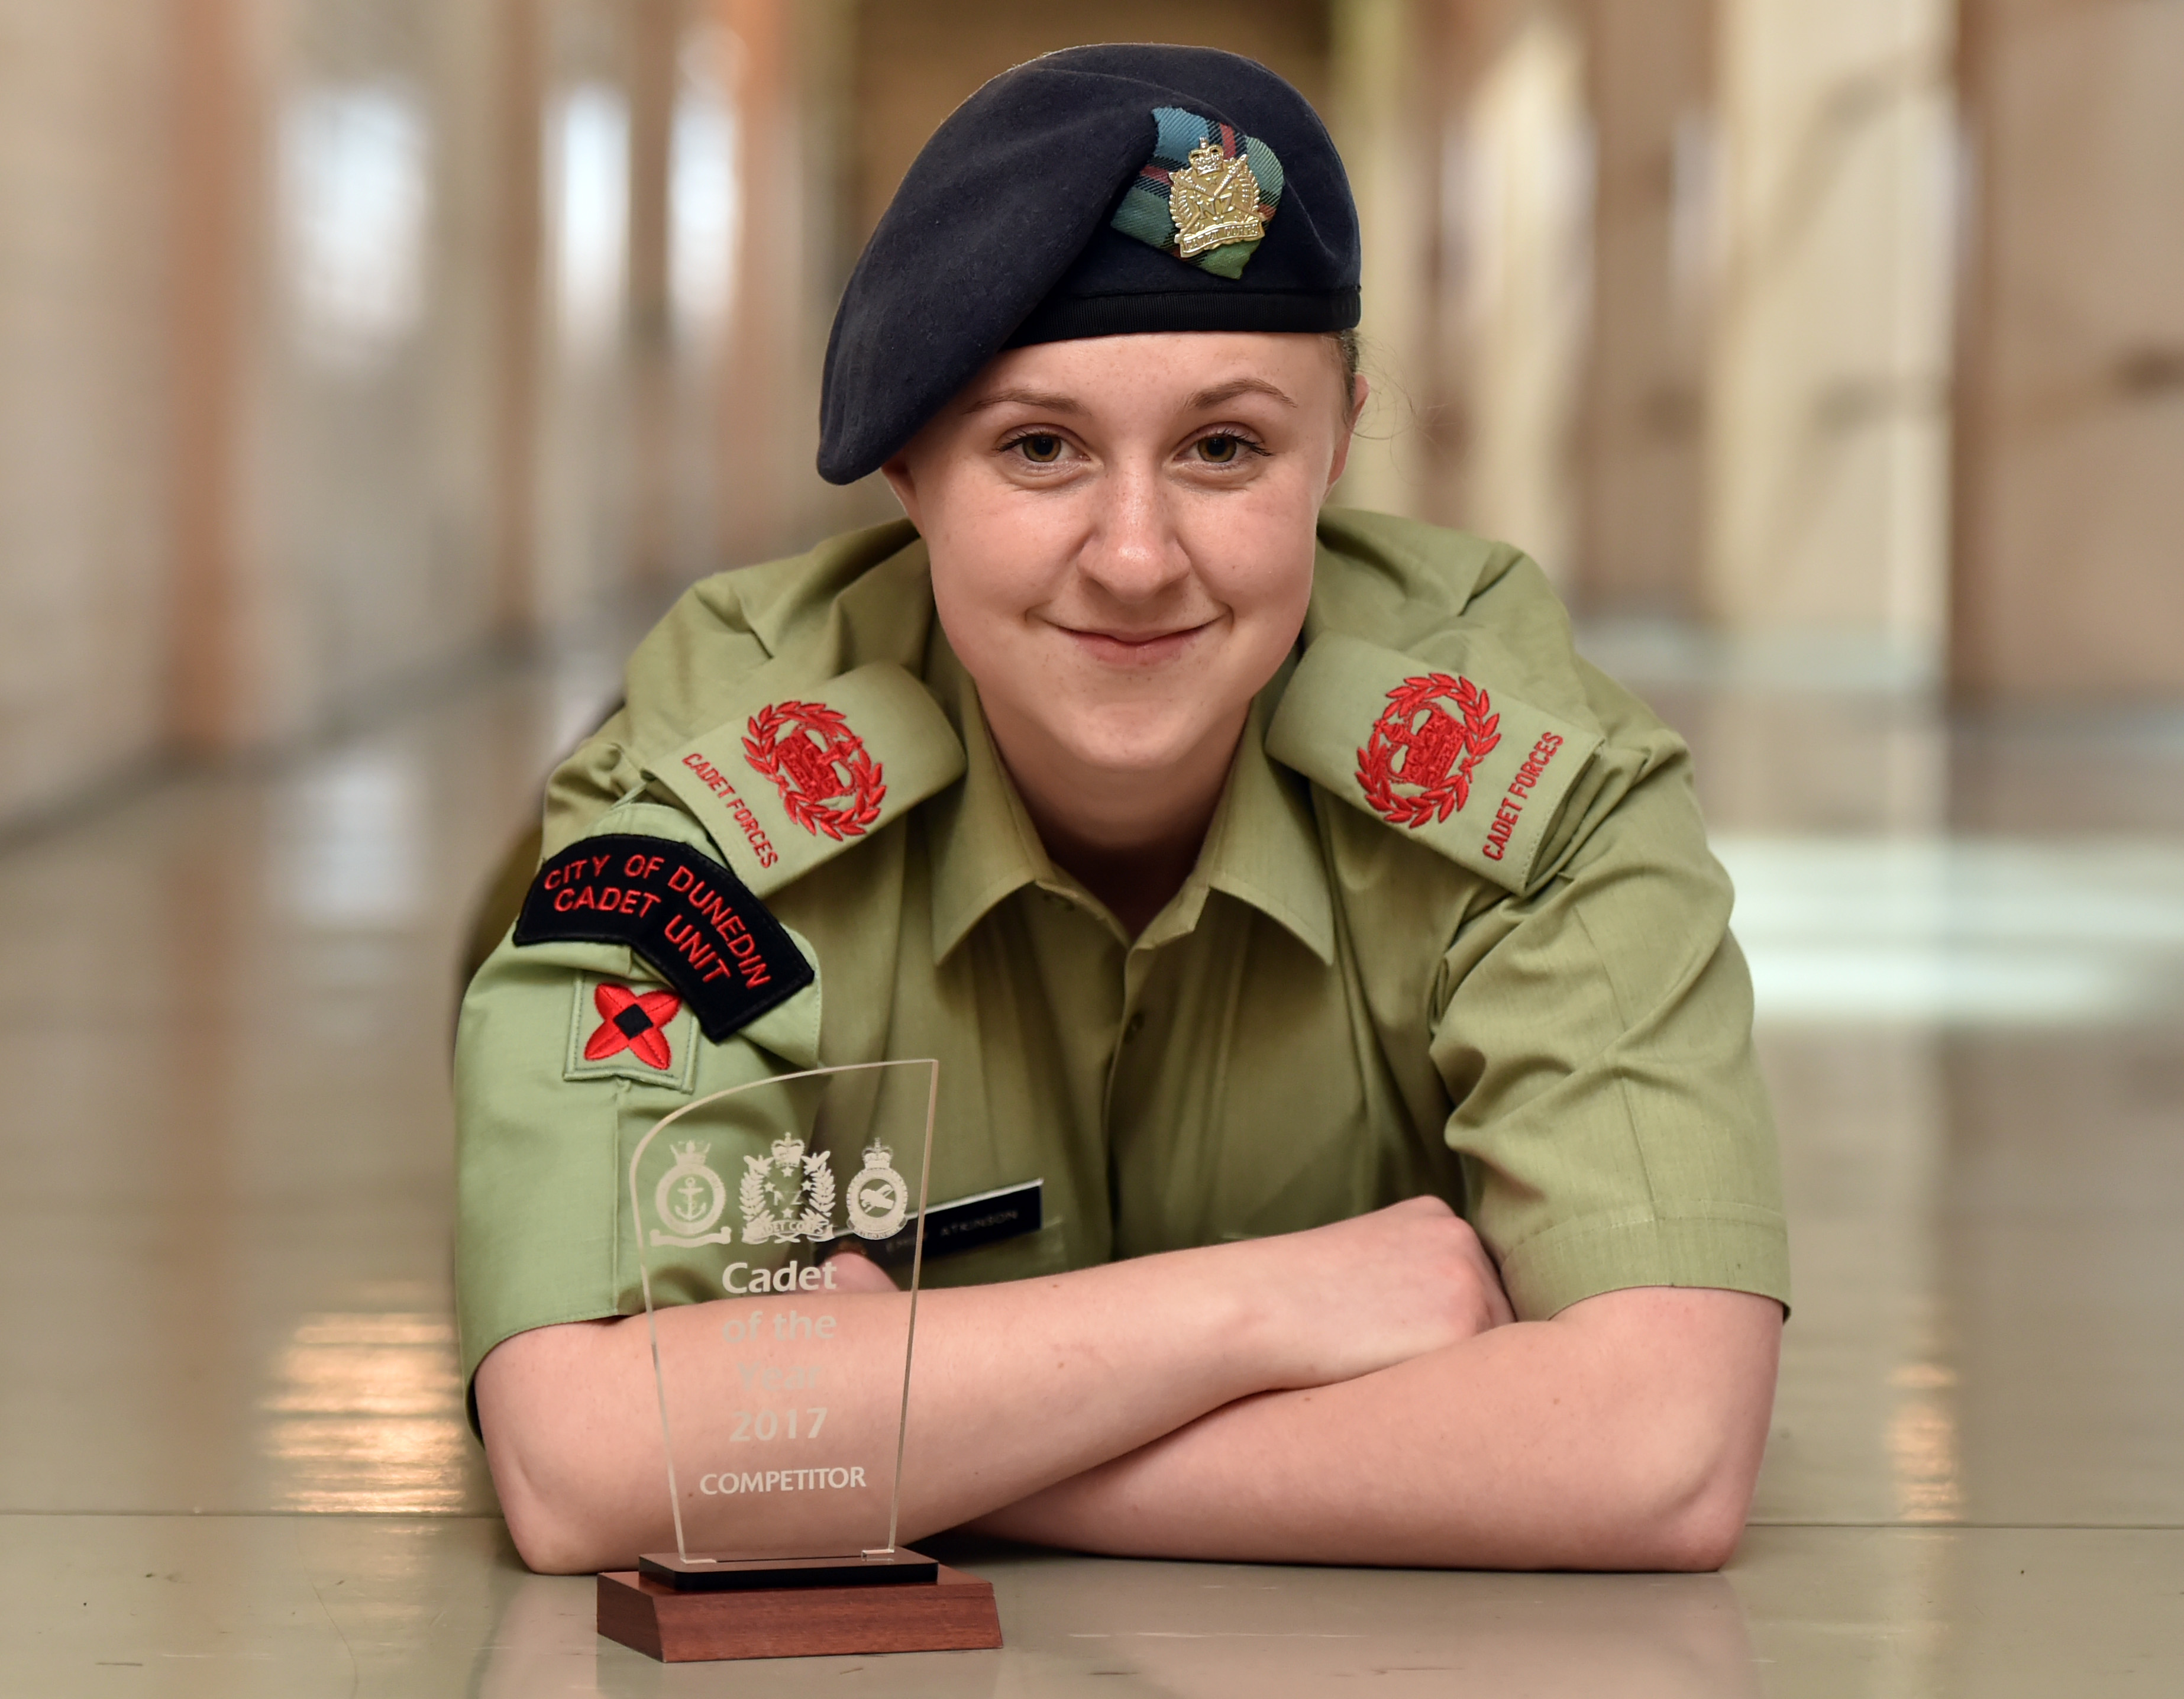 OGHS pupil named forces cadet of year | Otago Daily Times